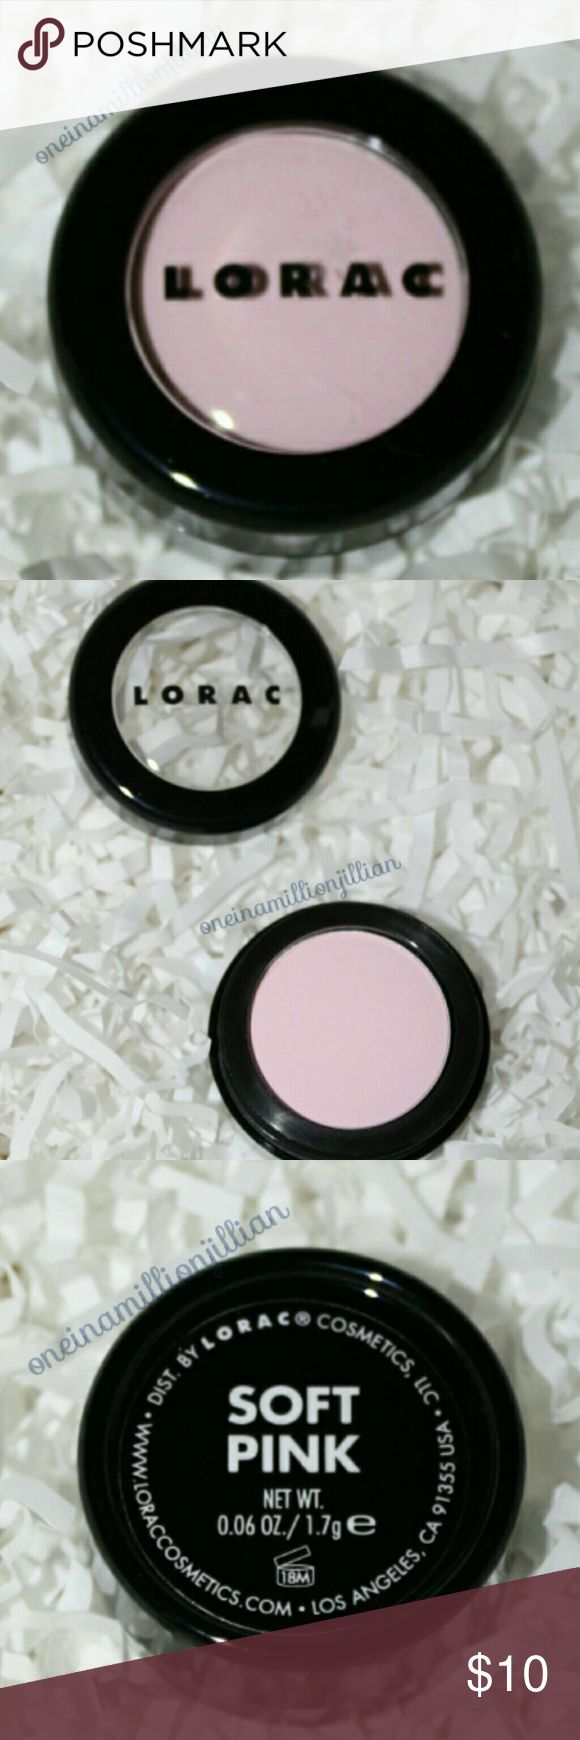 Lorac Eyeshadow Single - Soft Pink LE & DISCONTINUED  New - Never Used (Swatches from Google)  Full Sz & Authentic  Color: Soft Pink (matte baby pink)  Celebrity Makeup Artist Carol Shaw created LORAC's unique, long-lasting, non-irritating PRO eye shadow formula to use on & off the Red Carpet. This unique formula is infused with soothing botanicals such as Calendula & Cornflower. Shade, shadow, line & define.  - Silky-smooth, Highly-pigmented & Long-lasting - Eye shadow colors can be used…